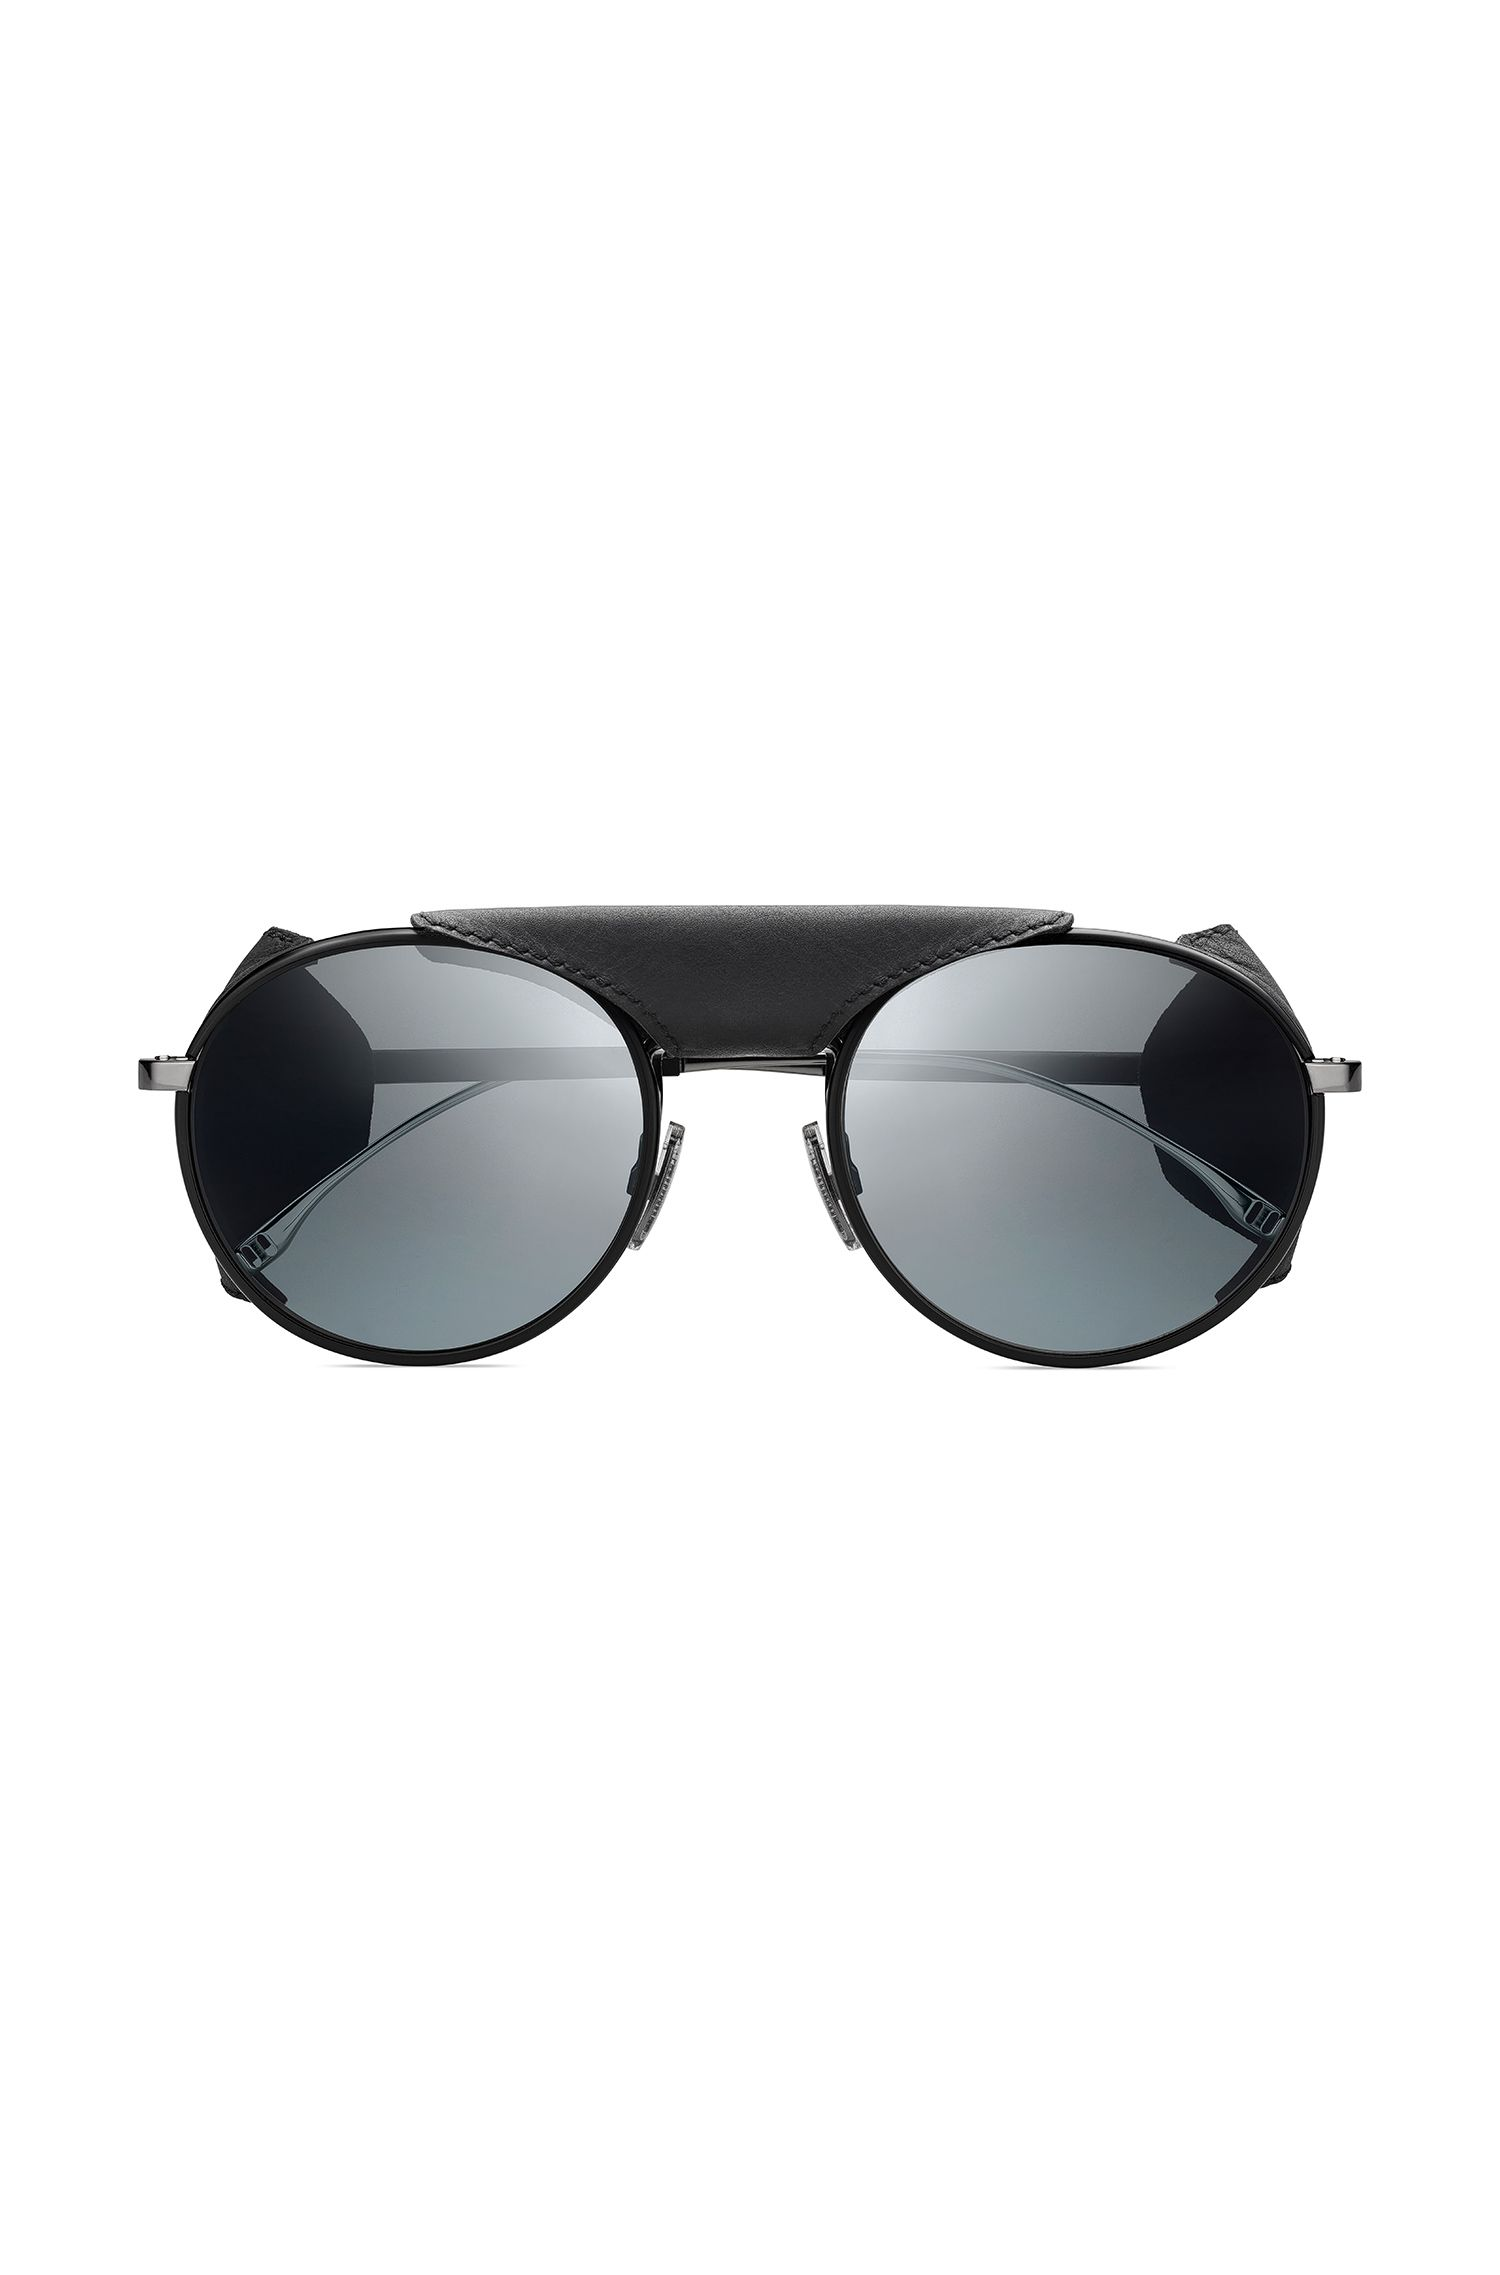 Panto sunglasses with removable leather shields